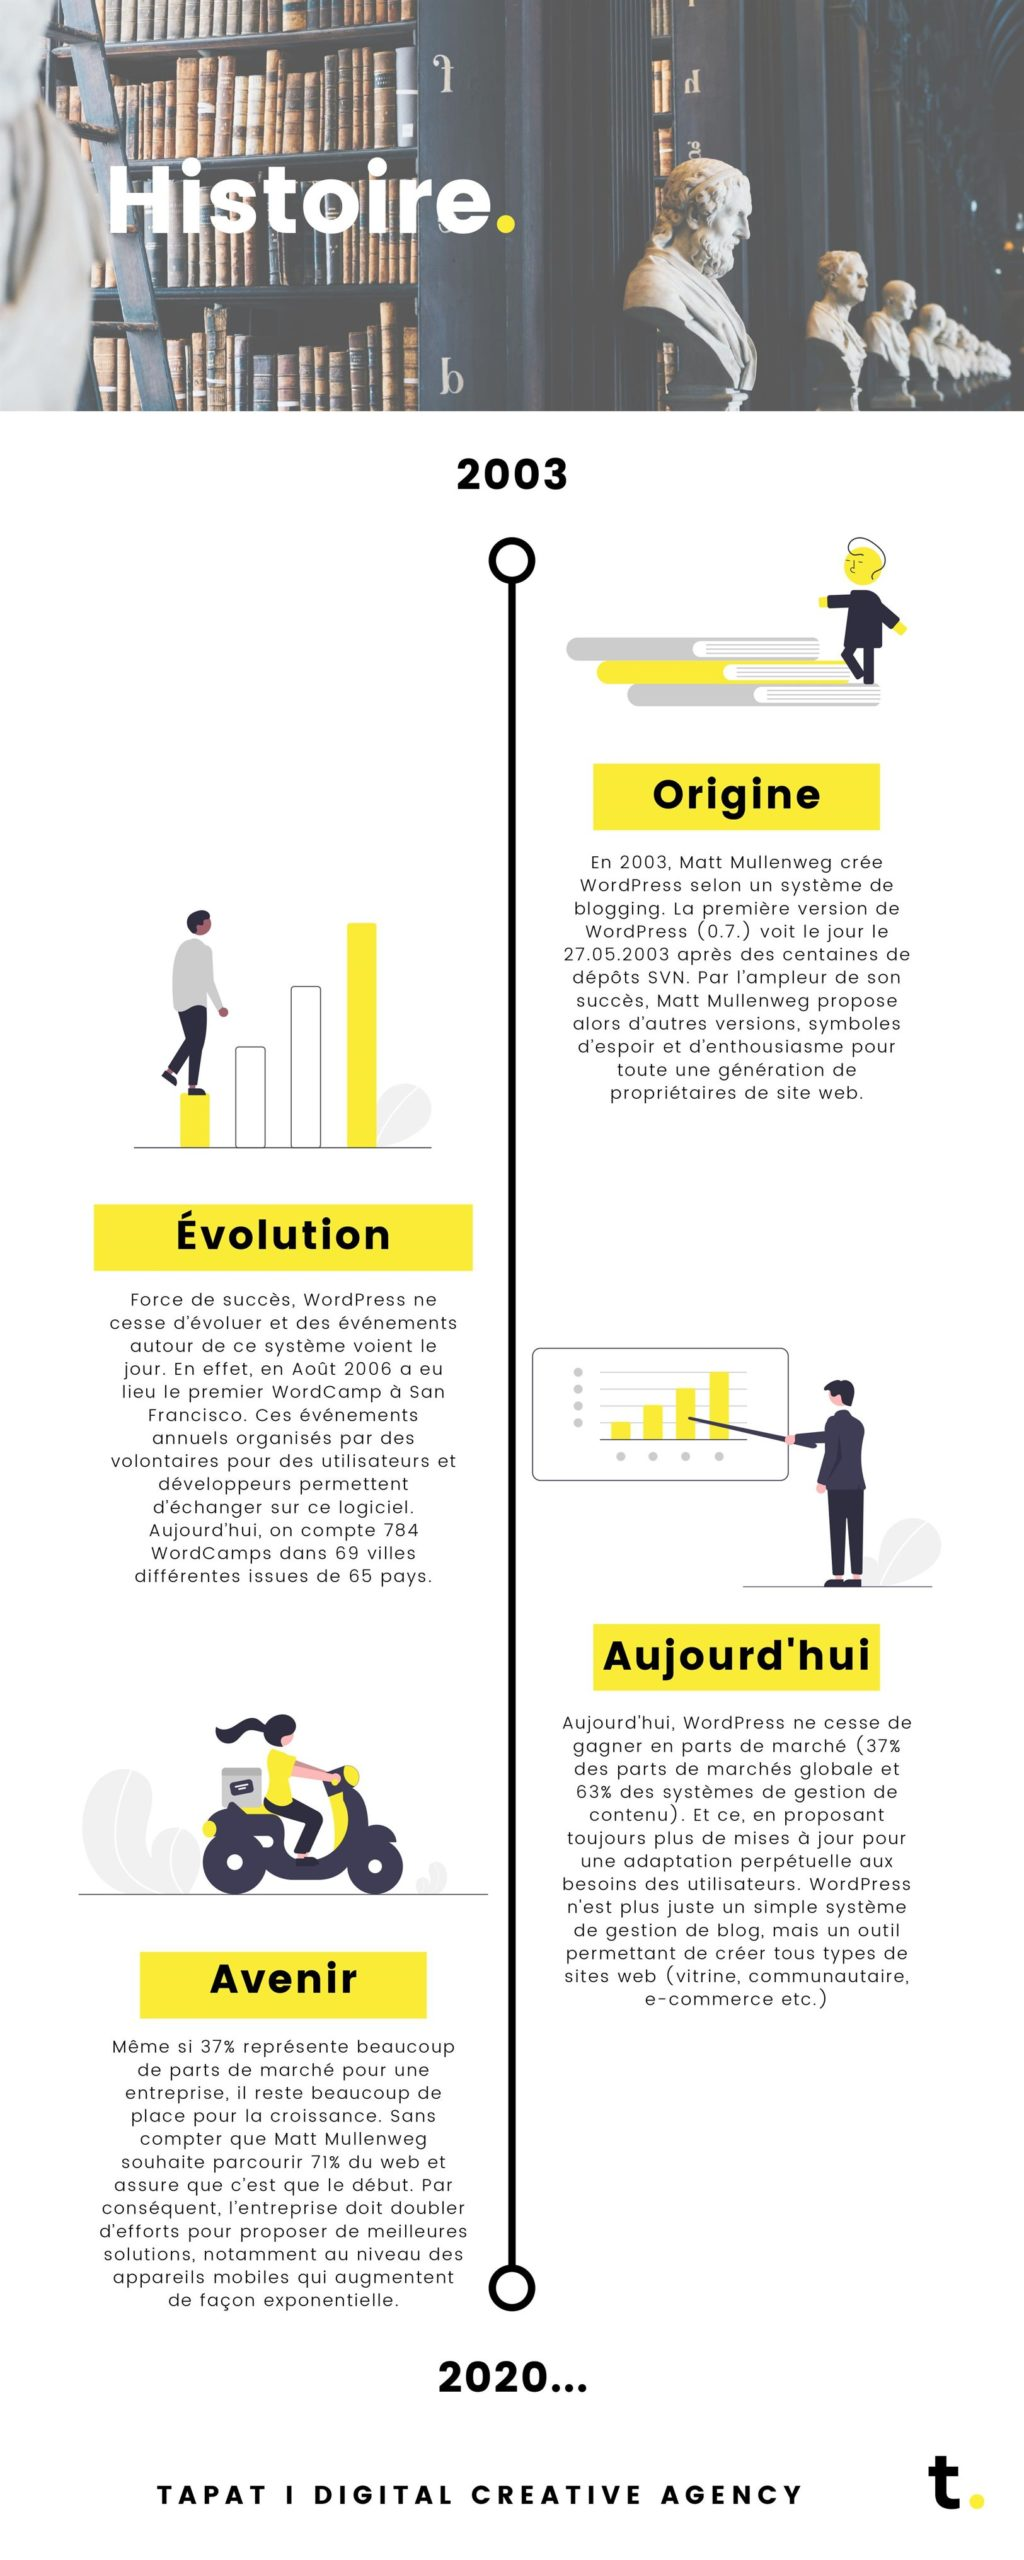 Wordpress infographic 02 history - tapat creative agency